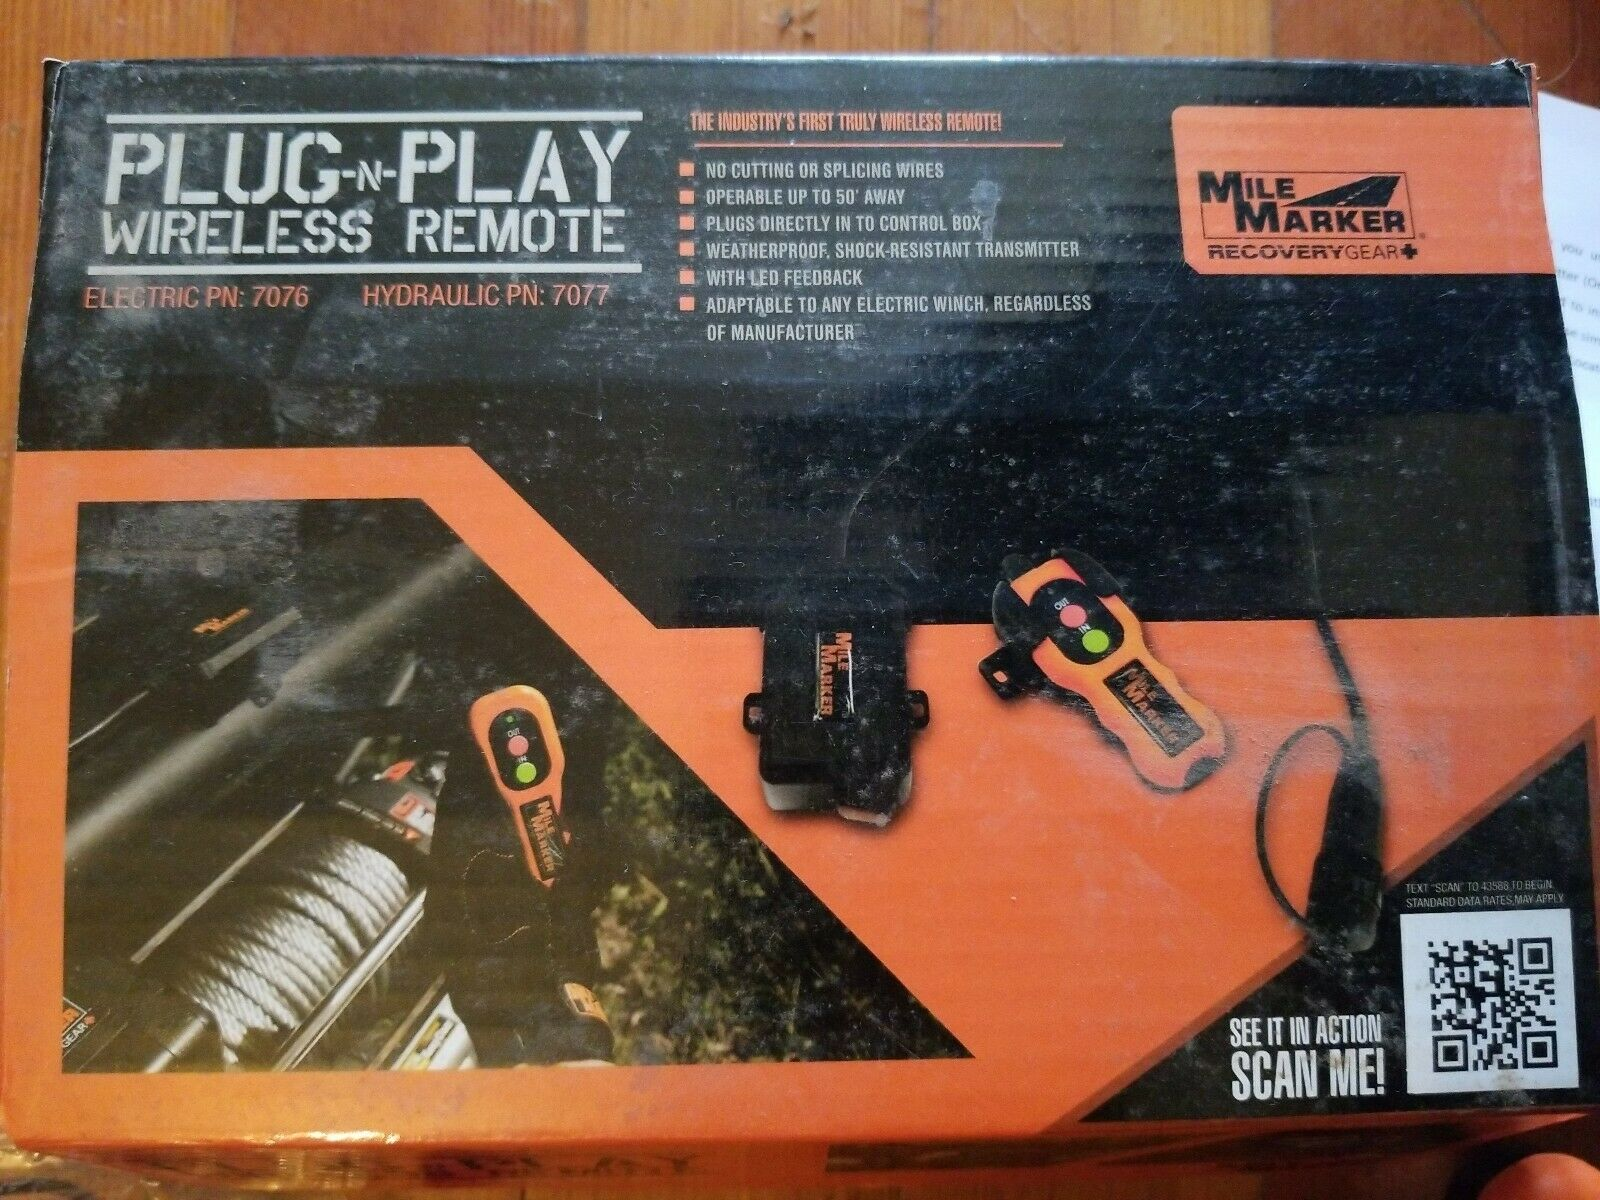 7077 Plug and Play Wireless Remote for Hydraulic Winch Mile Marker